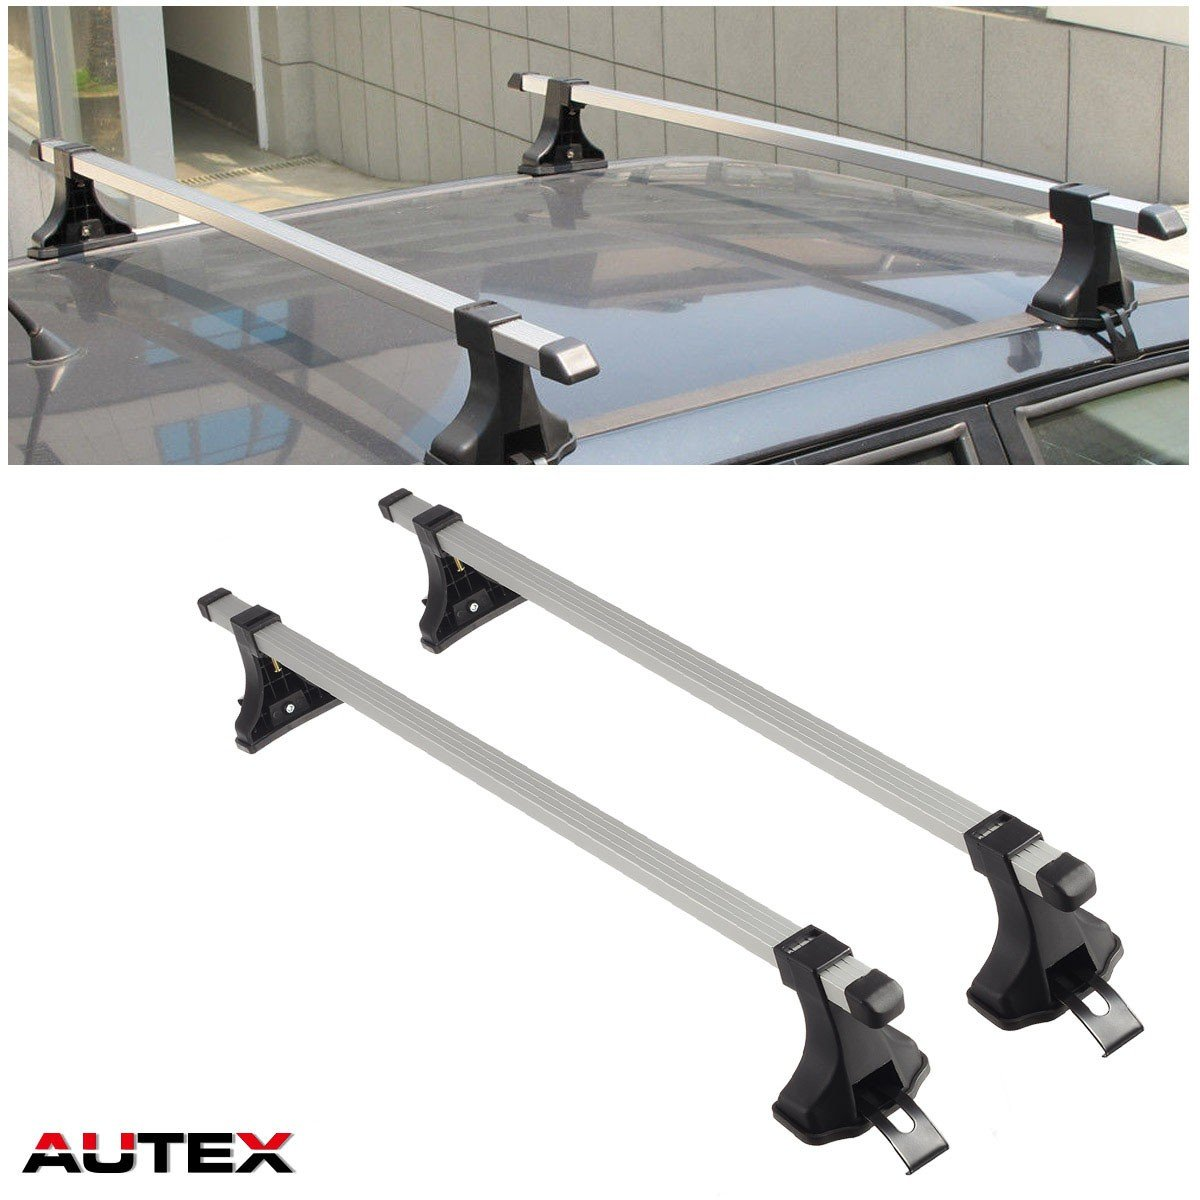 AUTEX 48'' Aluminum Universal Roof Rack Crossbar Roof Top Cargo Rail Racks Luggage Carrier Cross Bar Most Car Sedans SUVs Pickups